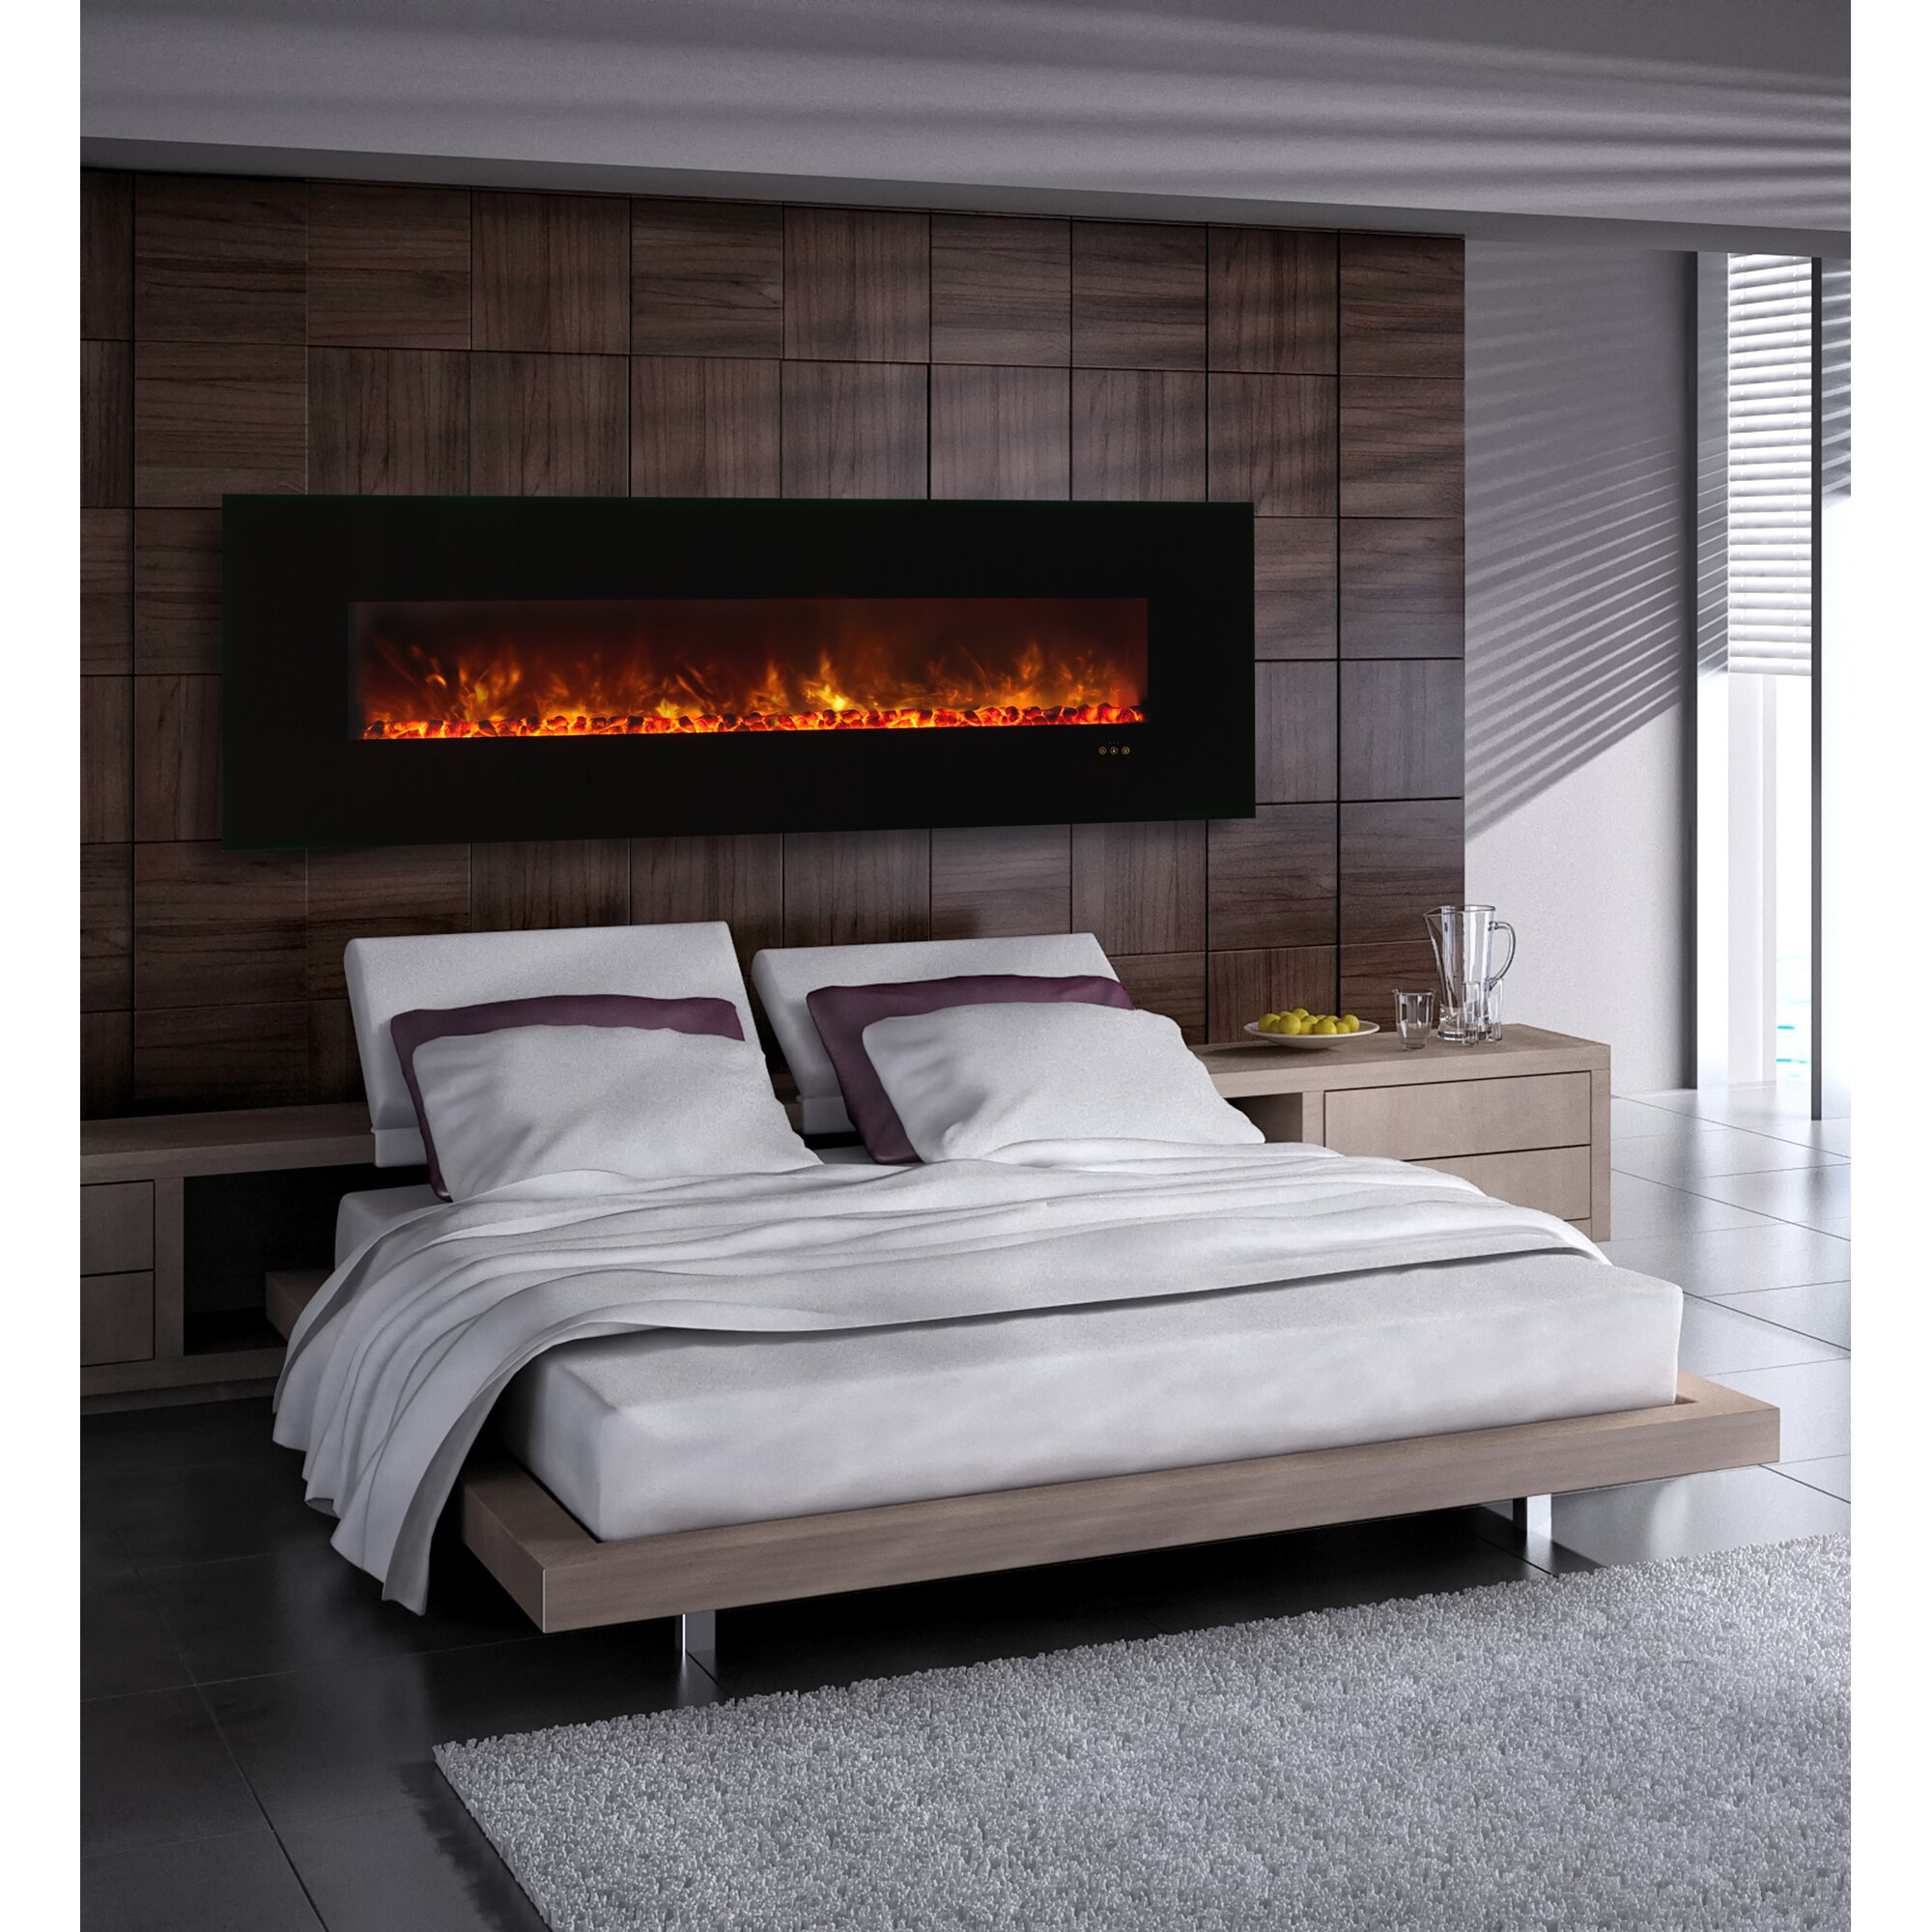 Bedroom electric fireplace - Clx Series Ambiance Custom Linear Delux Wall Mount Electric Fireplace